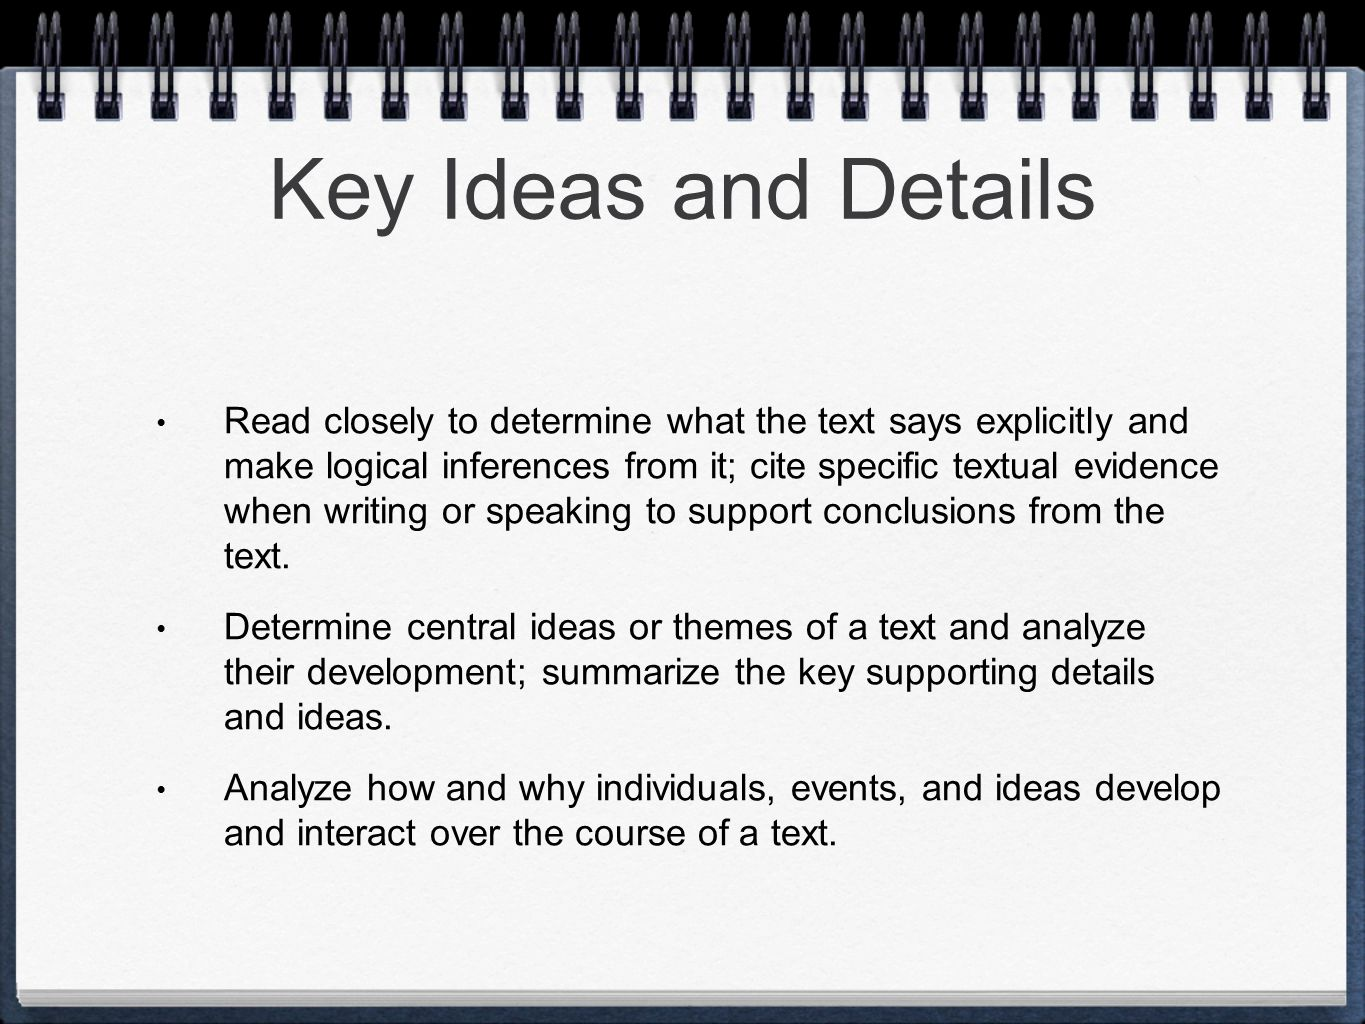 Key Ideas and Details Read closely to determine what the text says explicitly and make logical inferences from it; cite specific textual evidence when writing or speaking to support conclusions from the text.